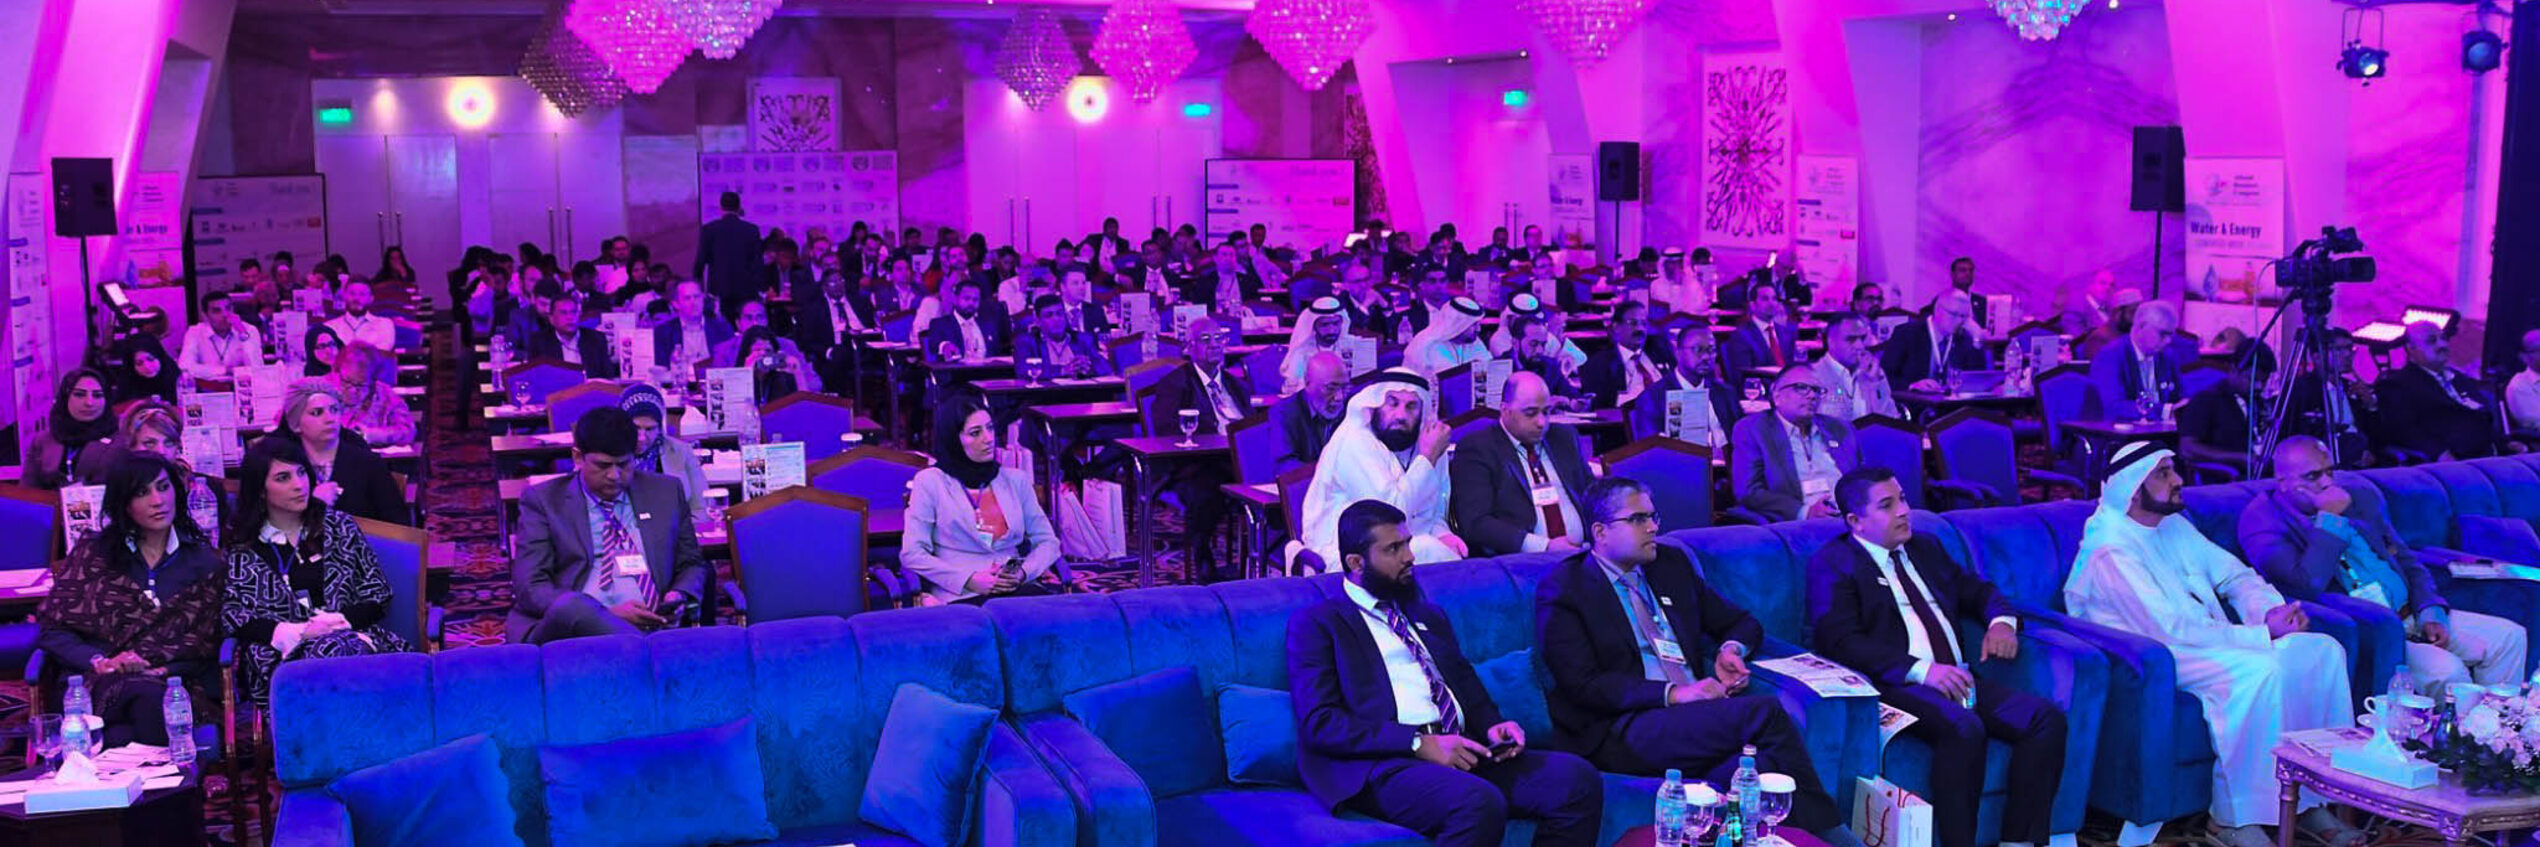 UAE congress provides prime spotlight for Smart Metering Solutions